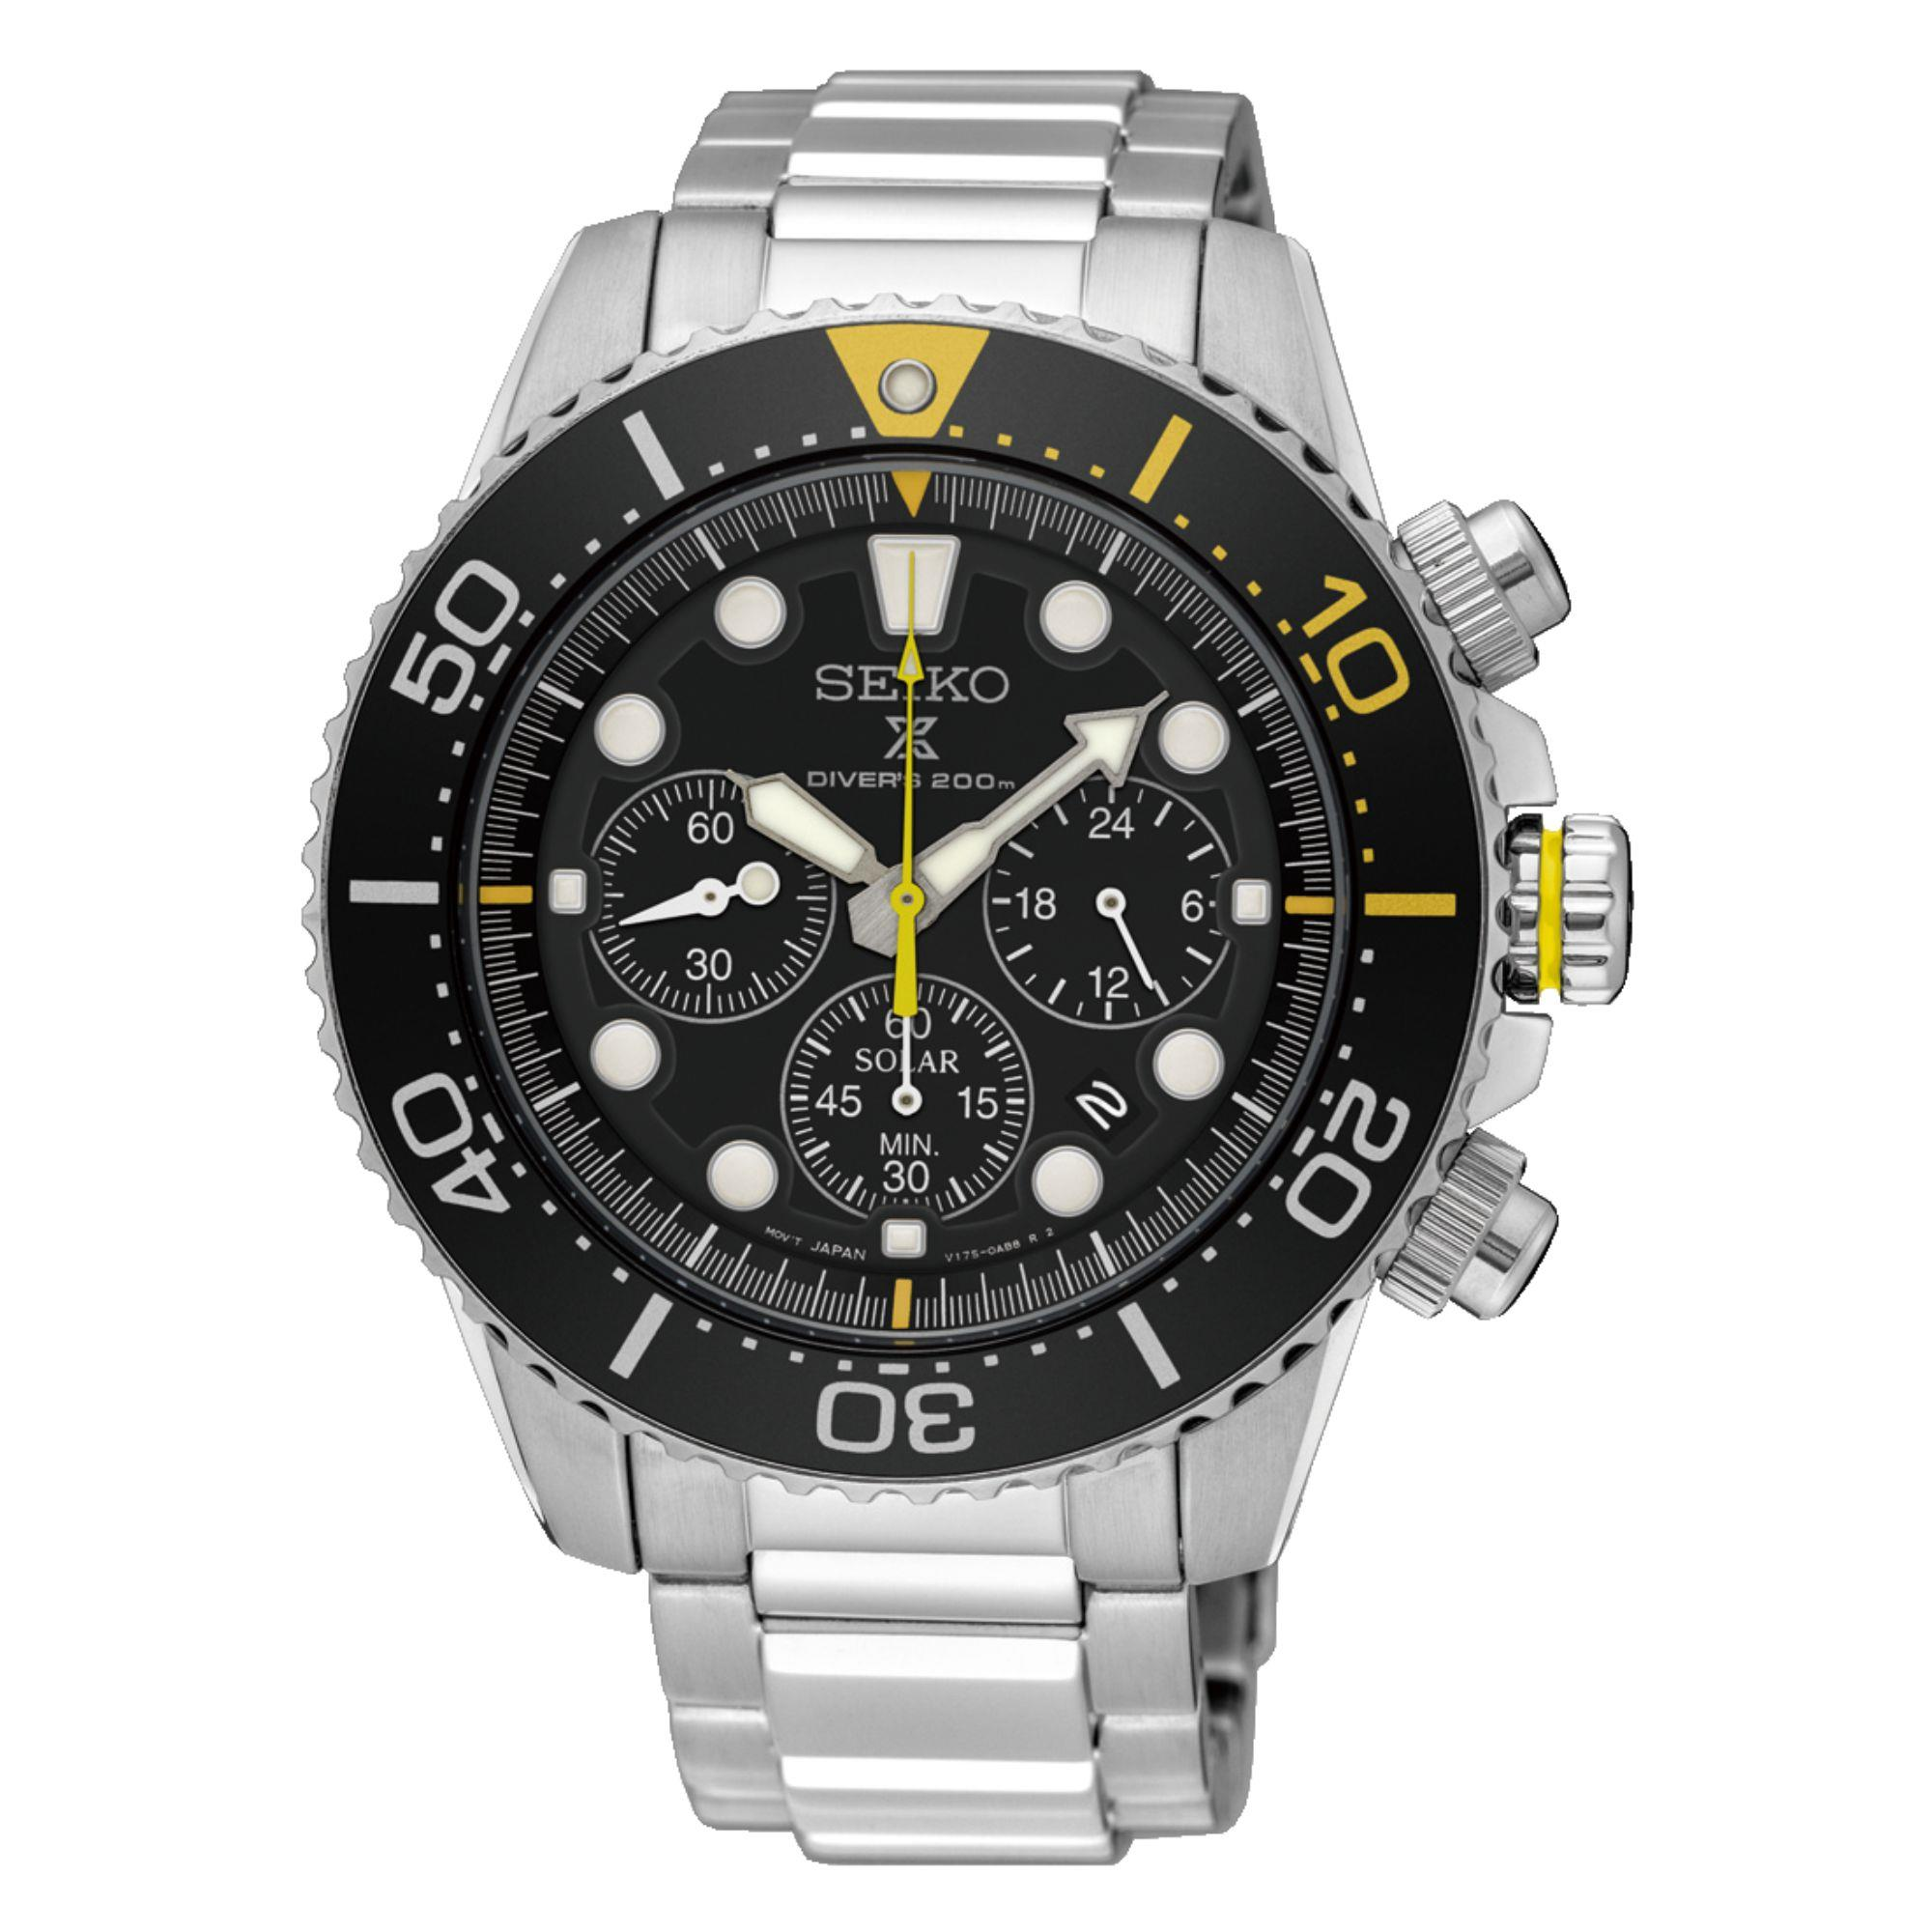 Seiko Prospex Solar Black Dial Silver Stainless Steel Chronograph Diver's Men's Watch SSC613P1